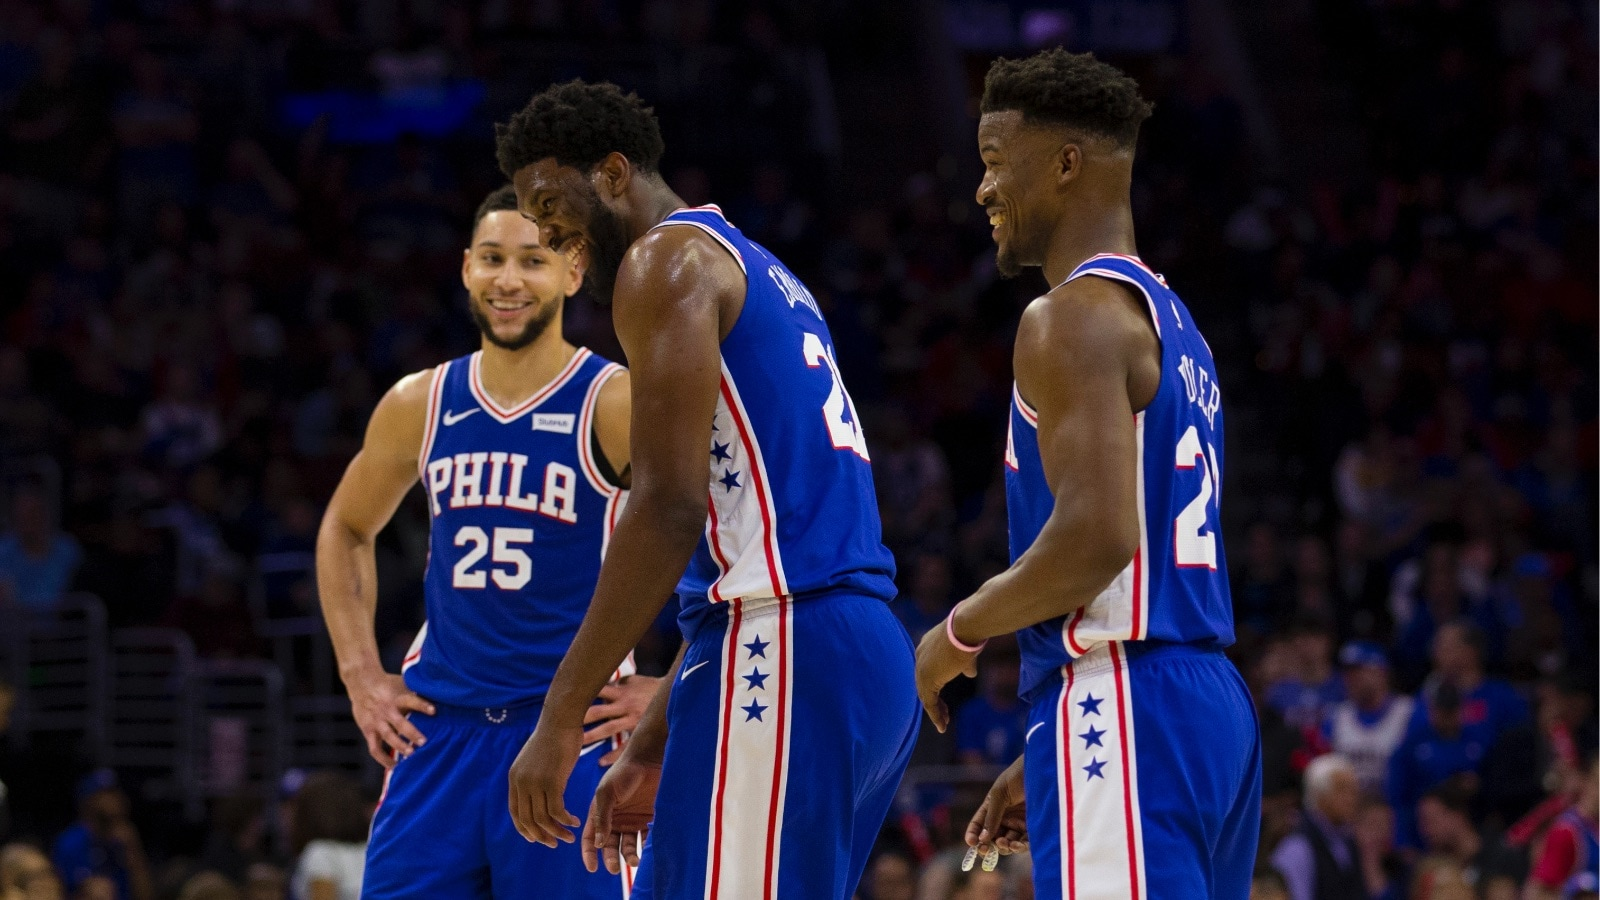 Ben Simmons, Joel Embiid, and Jimmy Butler of the 76ers